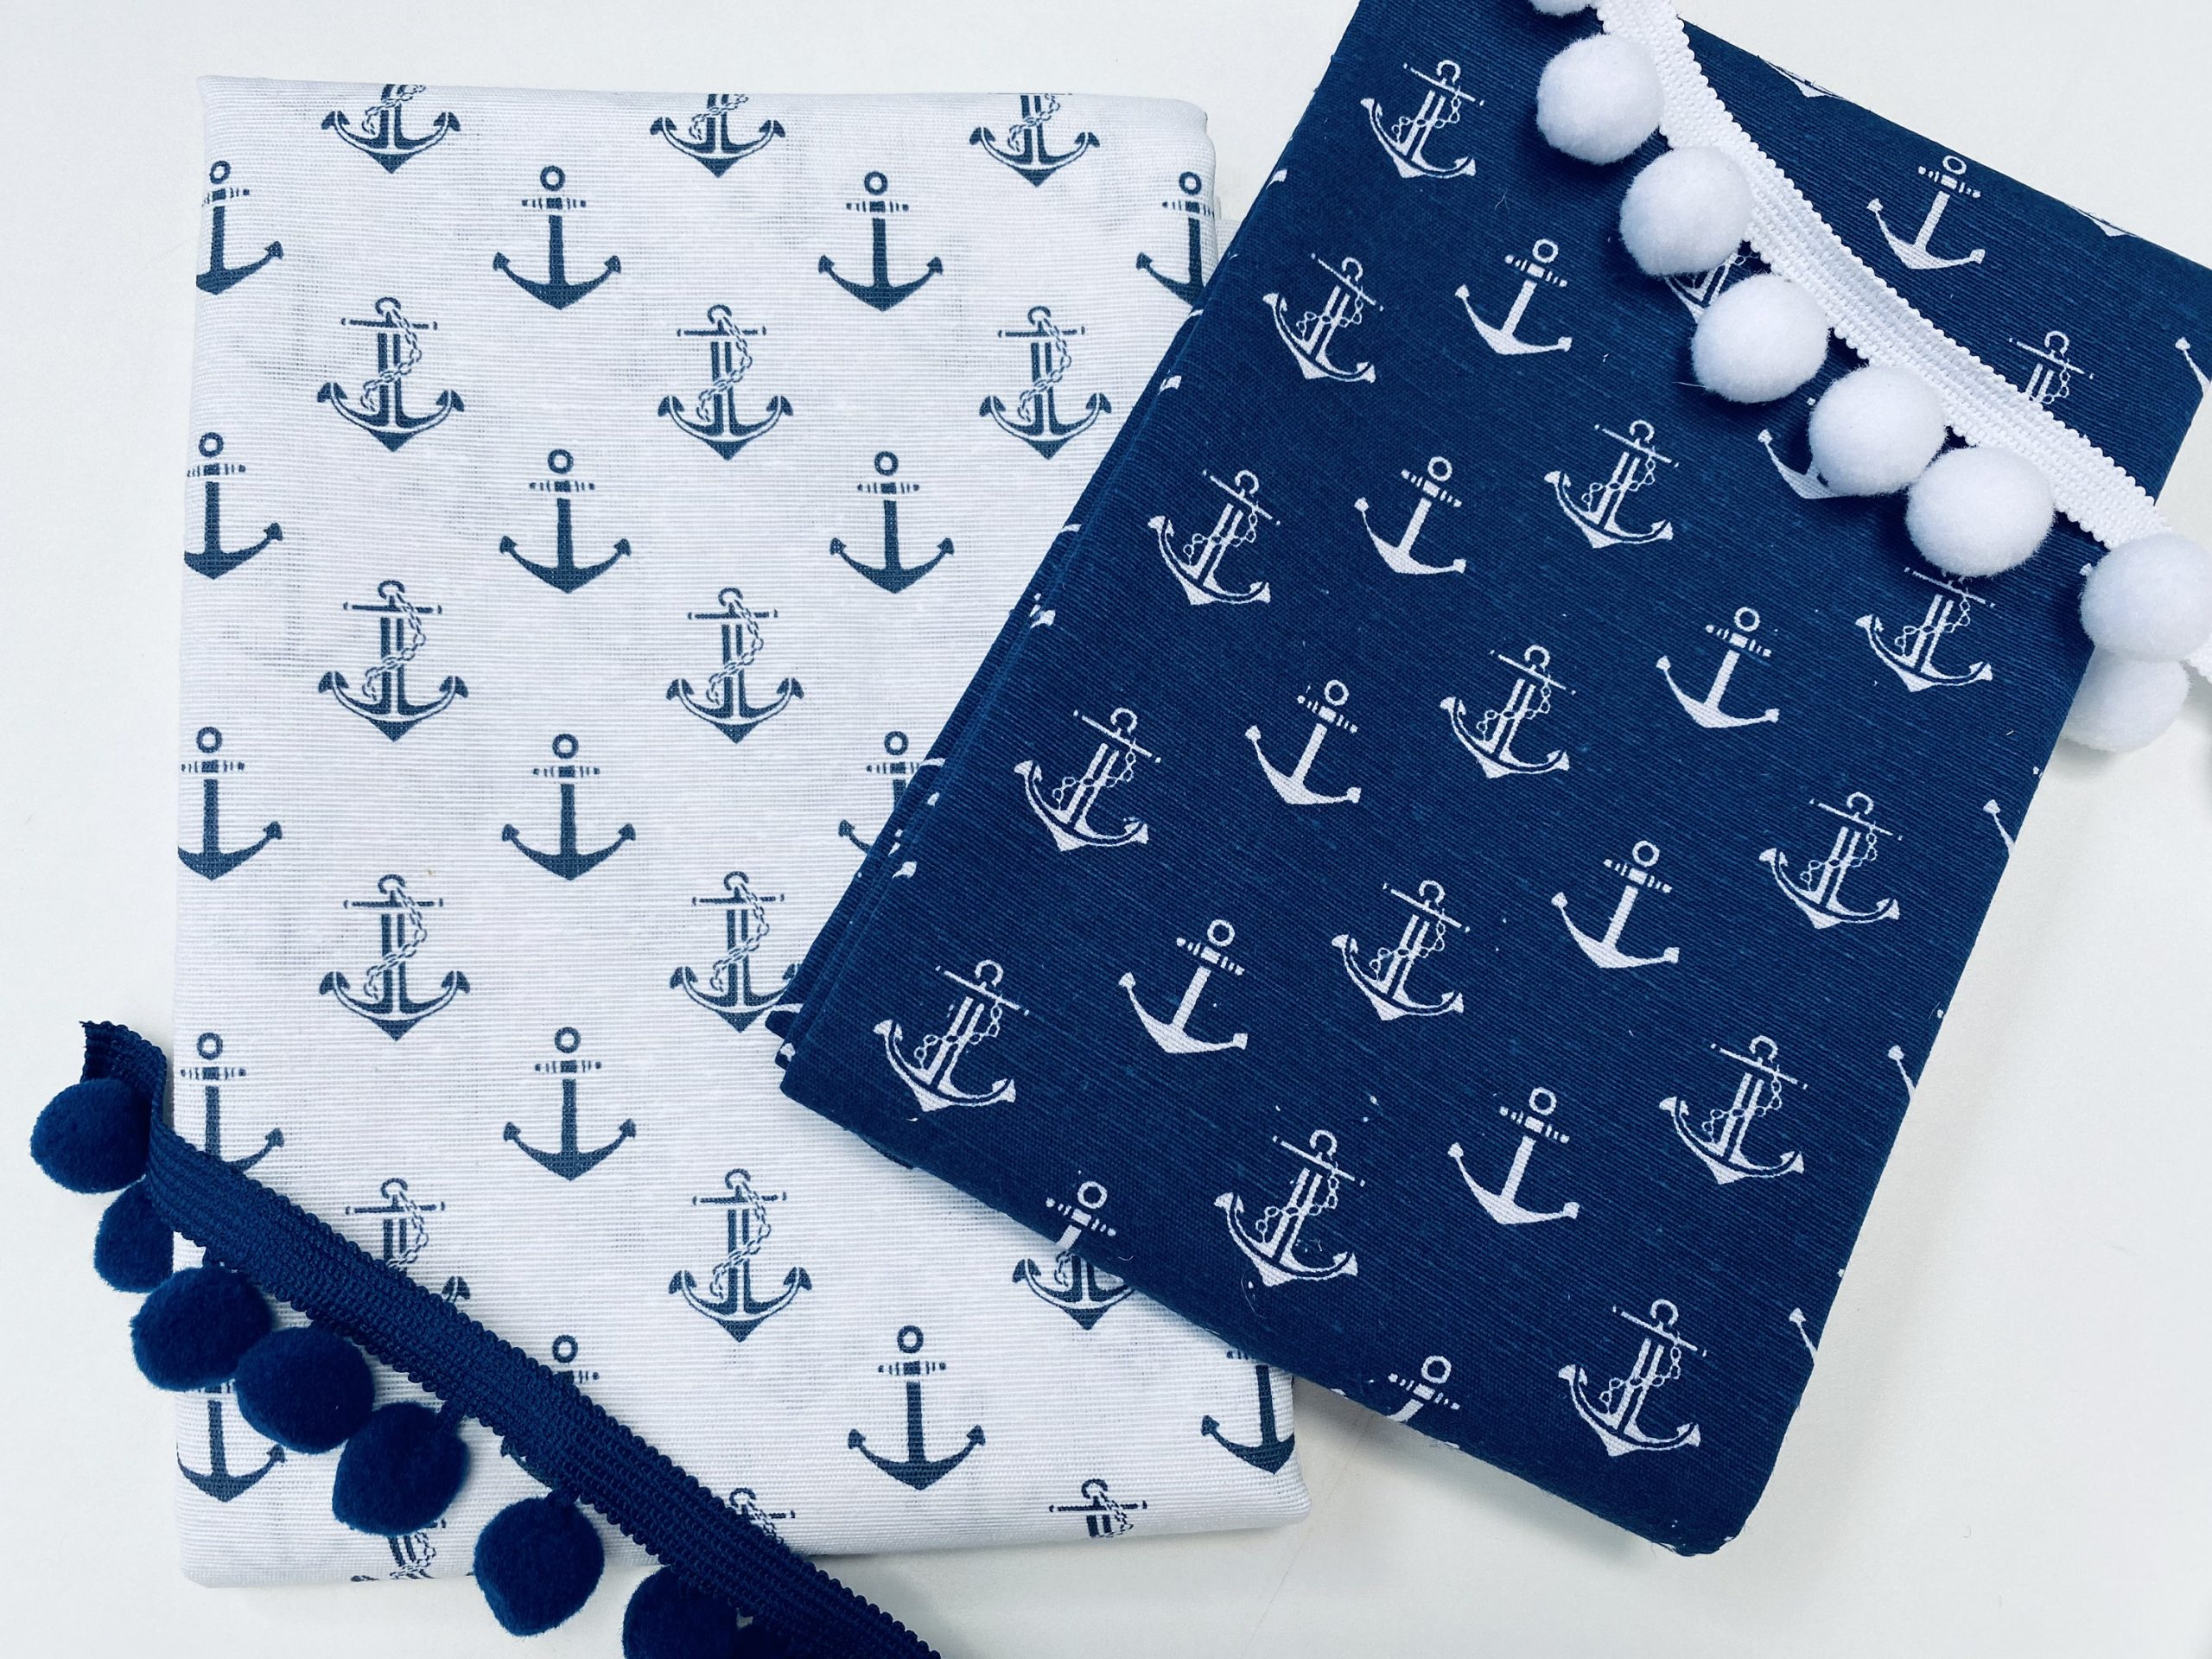 Small Anchor Fabric – Curtains, Upholstery, Dress Material – Ocean Marine Design – 140 cm Wide Textile – Blue & White